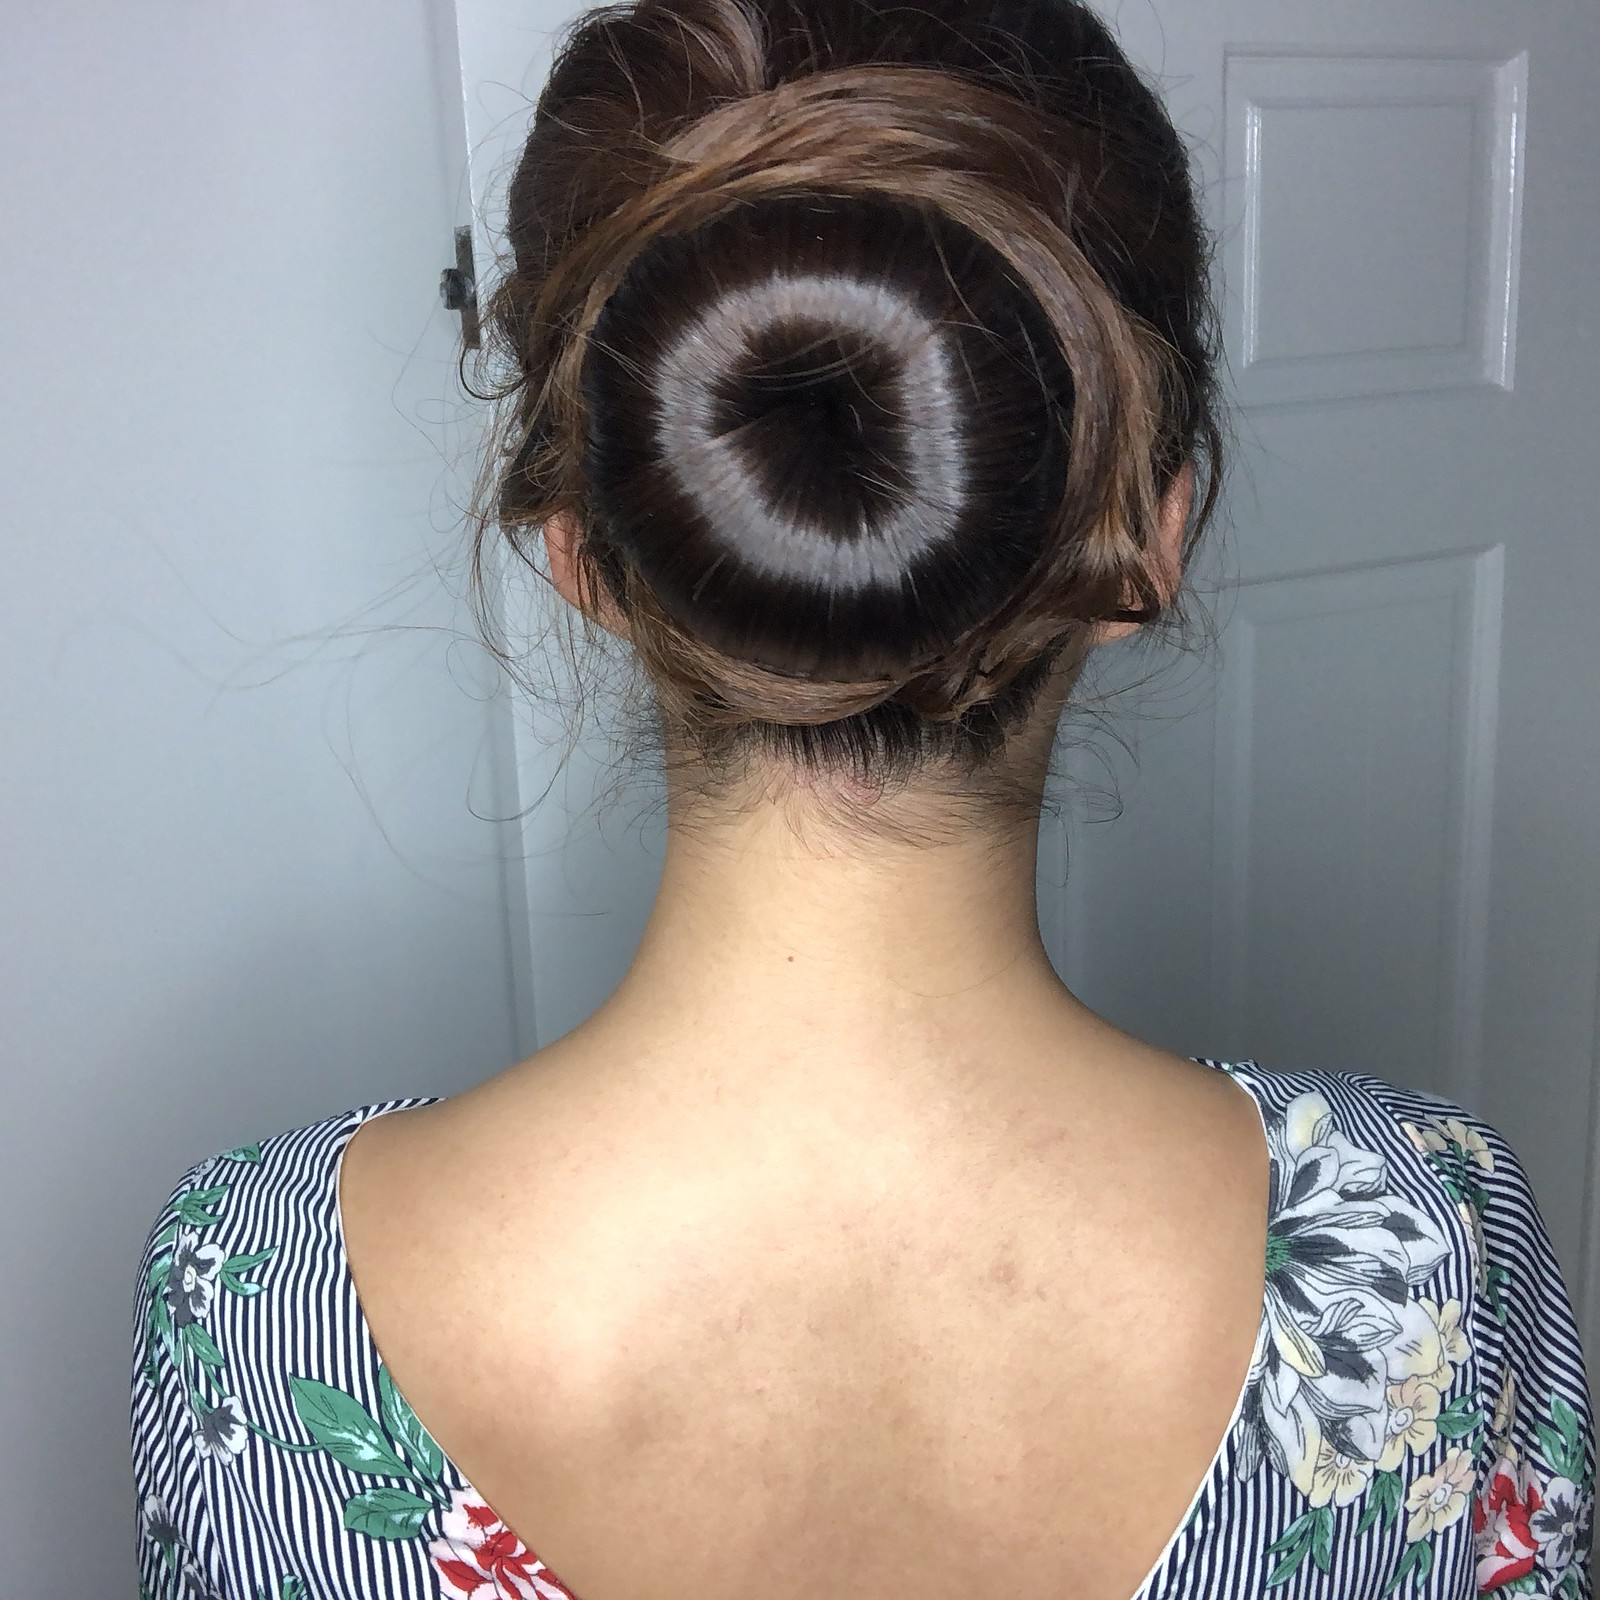 All that hair spray just to achieve this huge bun, my hair was terribly abused.